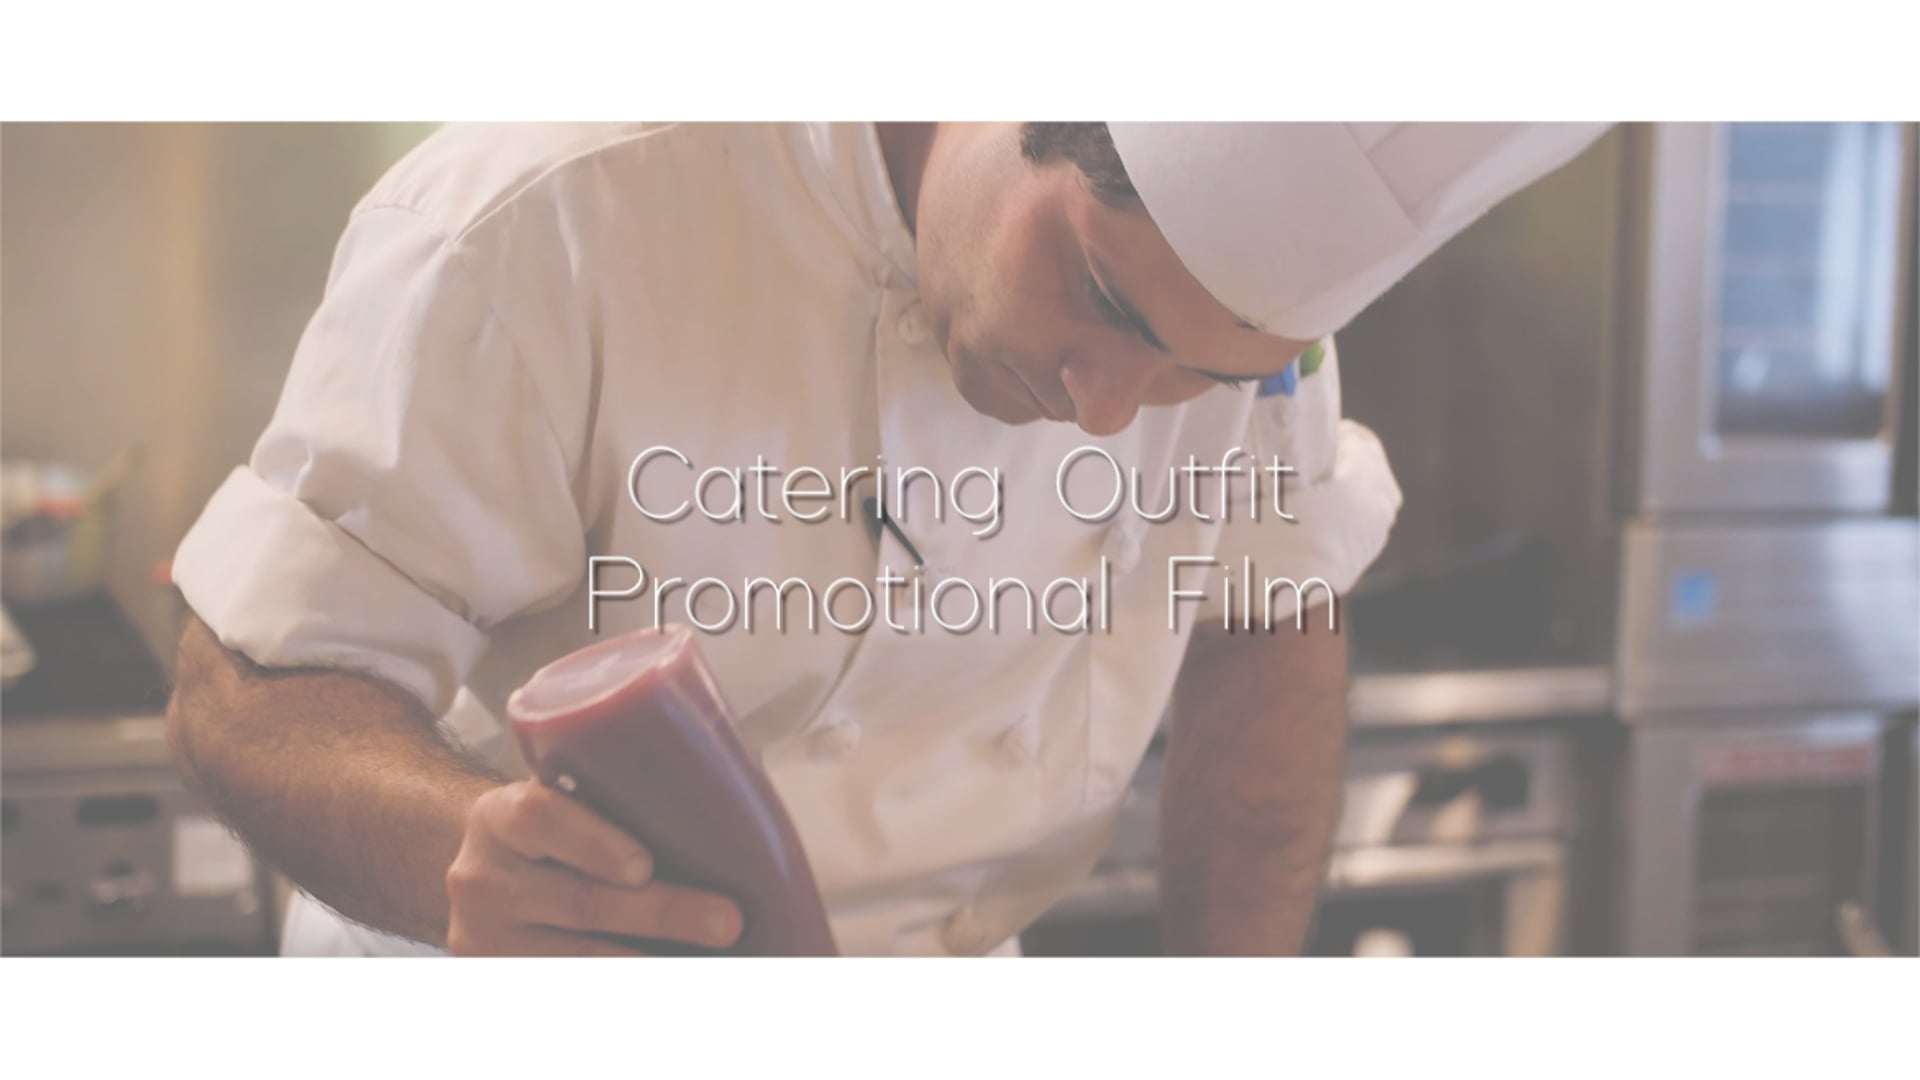 the catering outfit